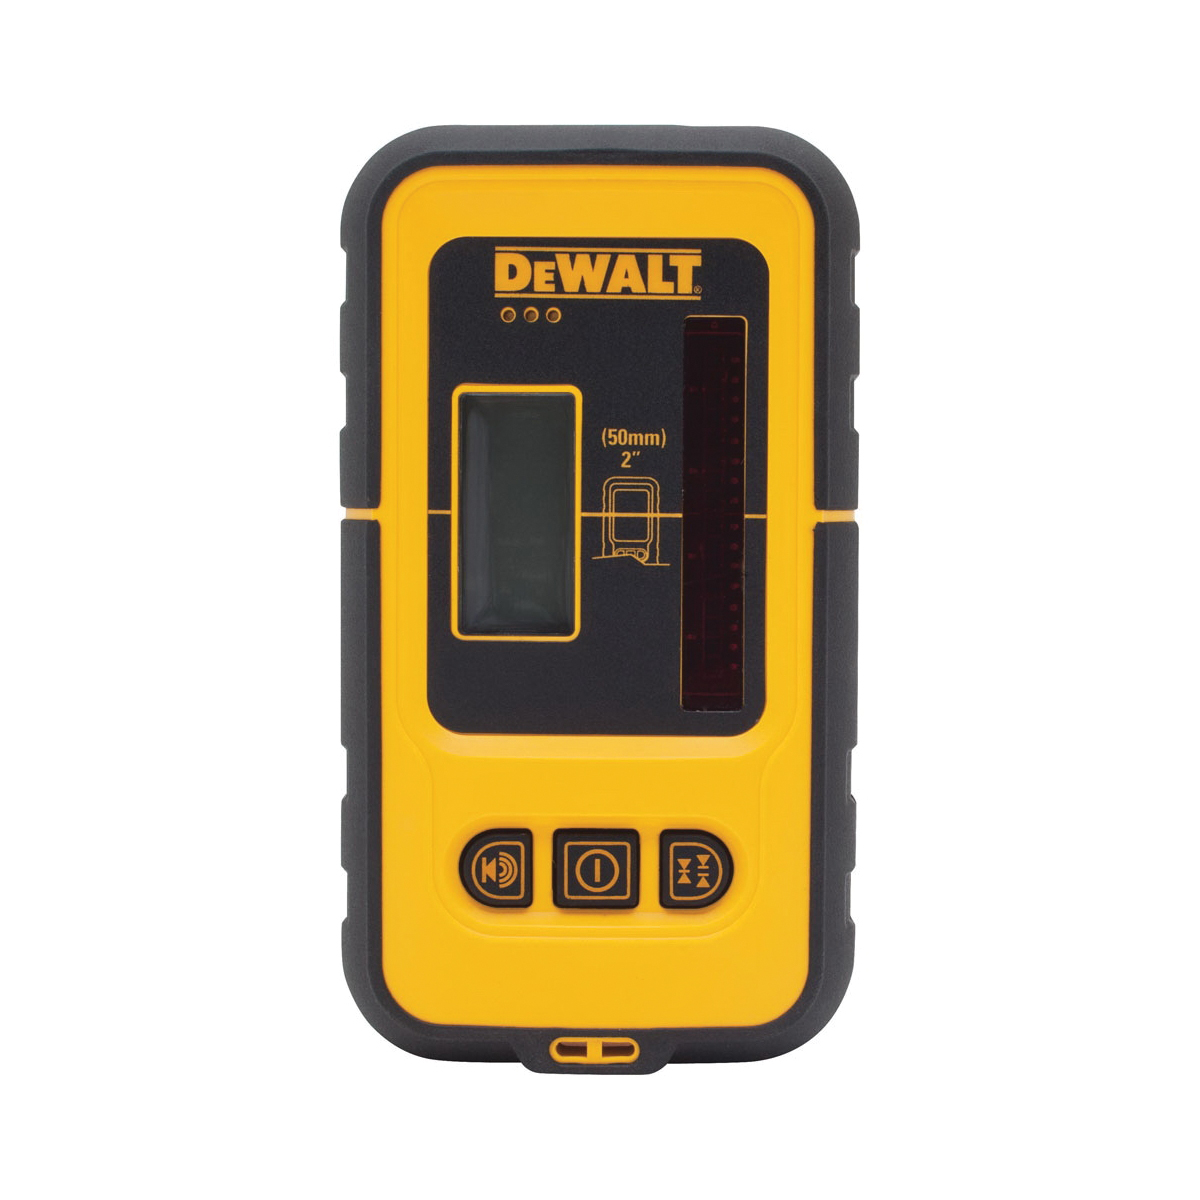 DeWALT® Guaranteed Tough® DW0892G Impact Resistant Line Laser Detector, 165 ft Working Range, (2) AA Batteries, +/-1/32 in Tolerance, For Use With DW088K, DW089K, DW0811, DW0822, DW0851 Self-Levelling Spot Beam and Horizontal Line, Plastic